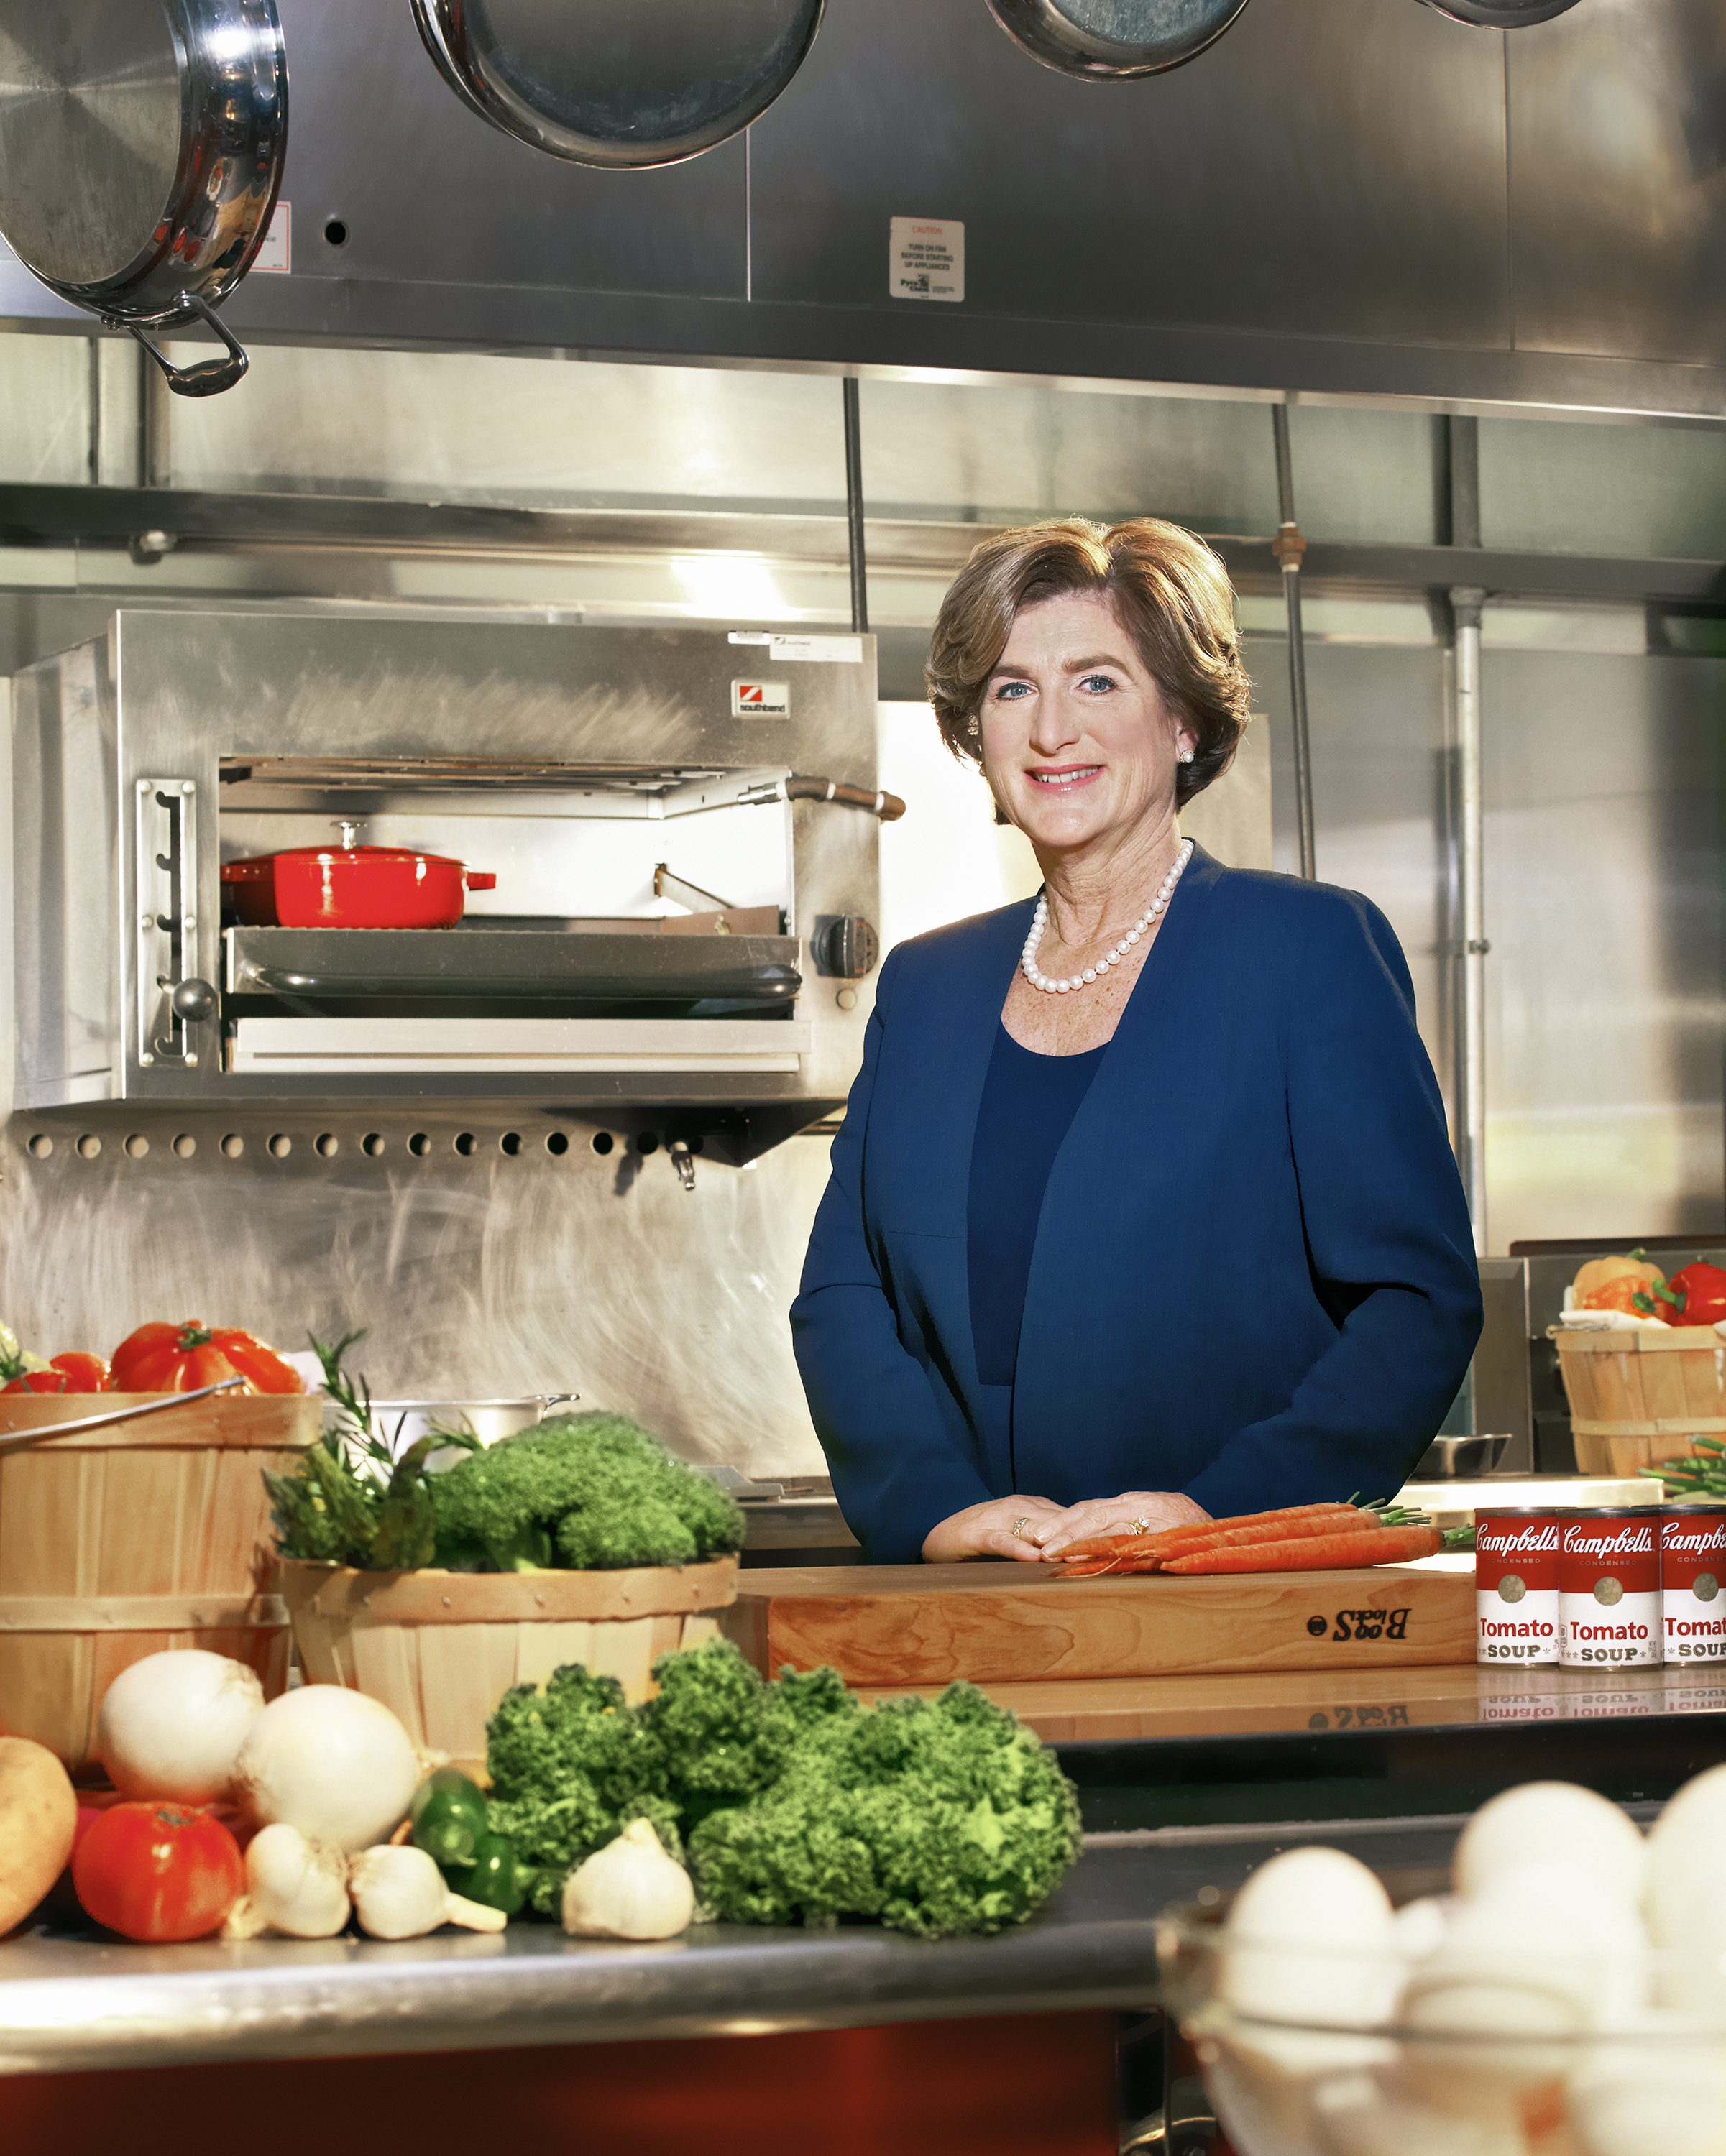 Soup or salad? CEO Denise Morrison is reinventing Campbell's offerings, including more fresh foods